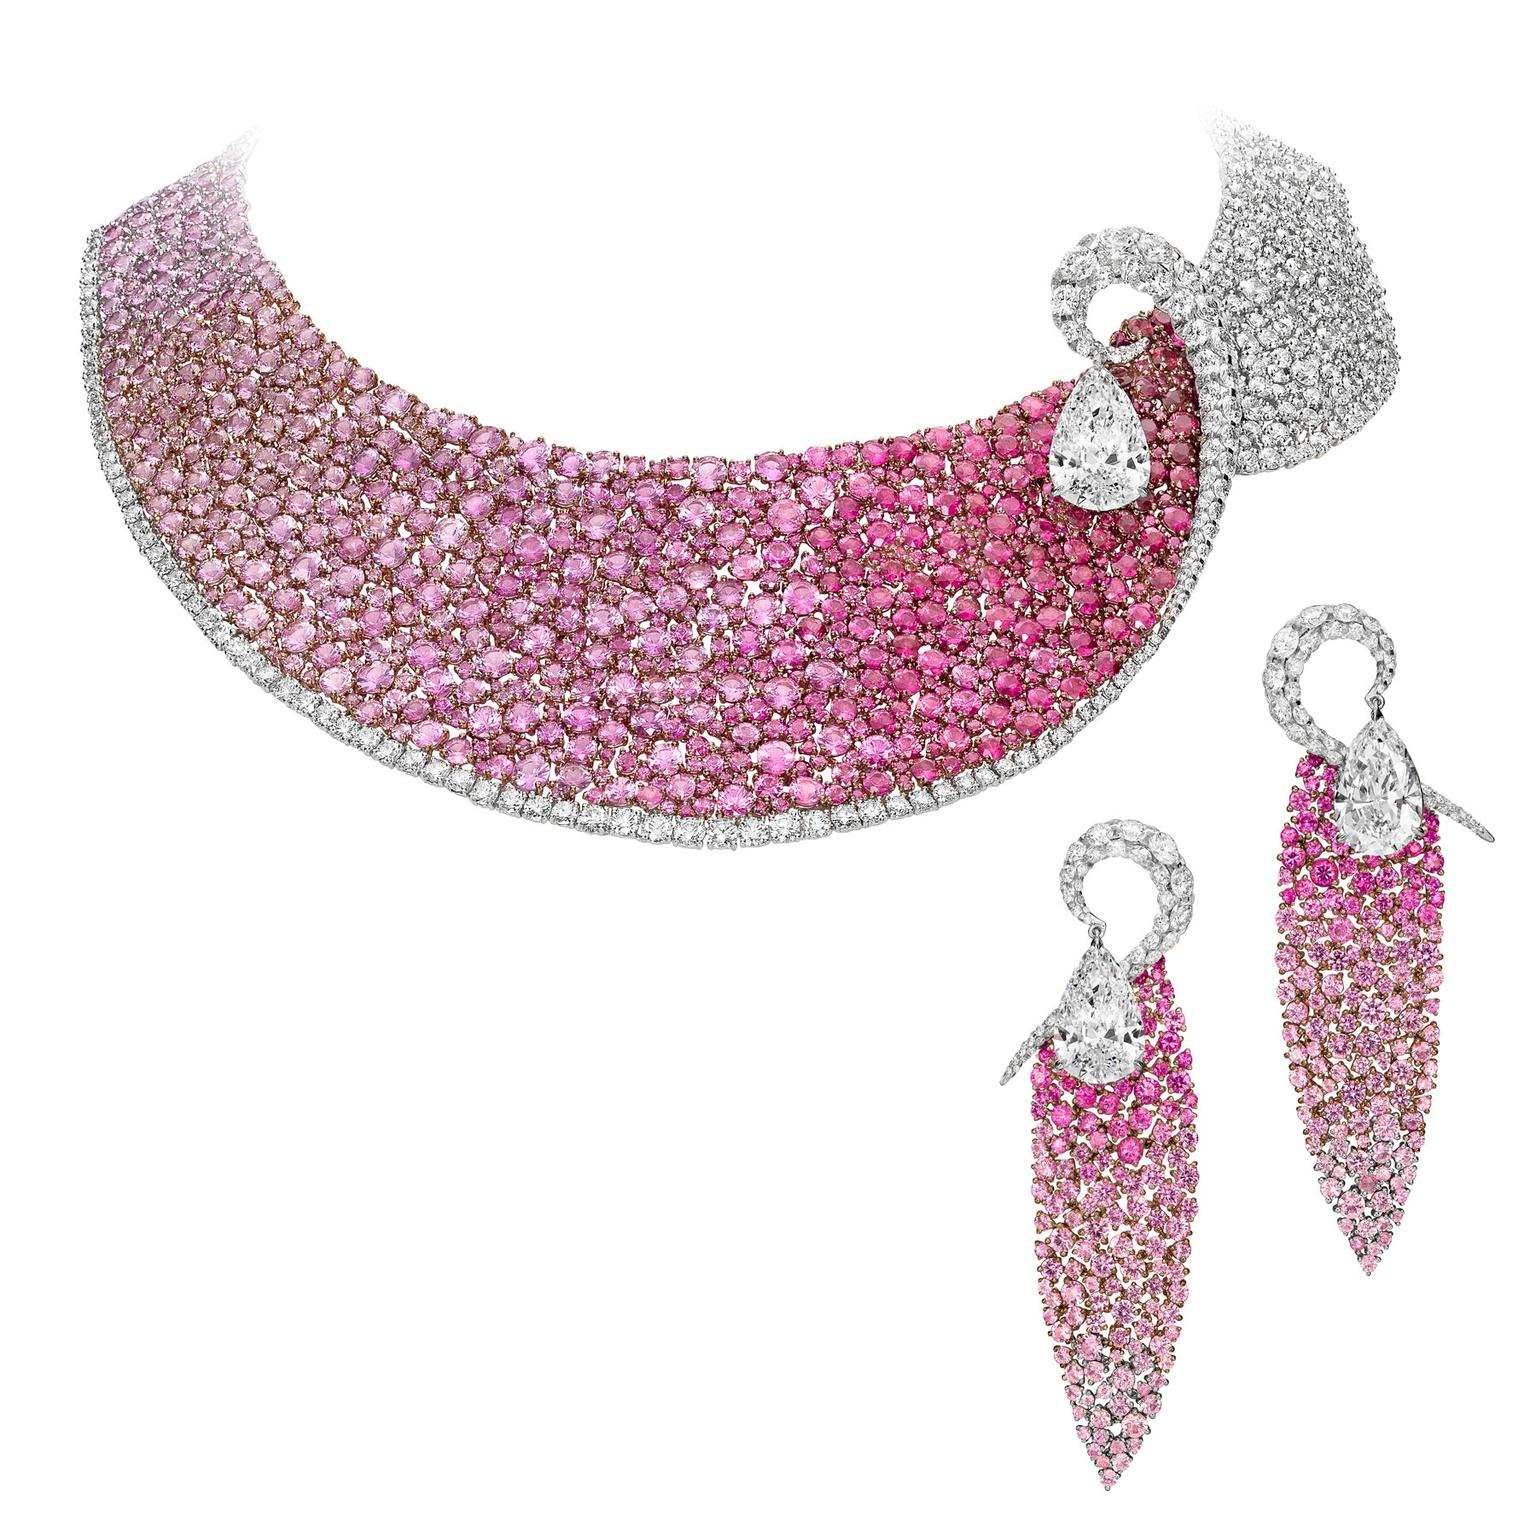 Boghossian Les Merveilles ruby, pink sapphire and diamond necklace and matching earrings